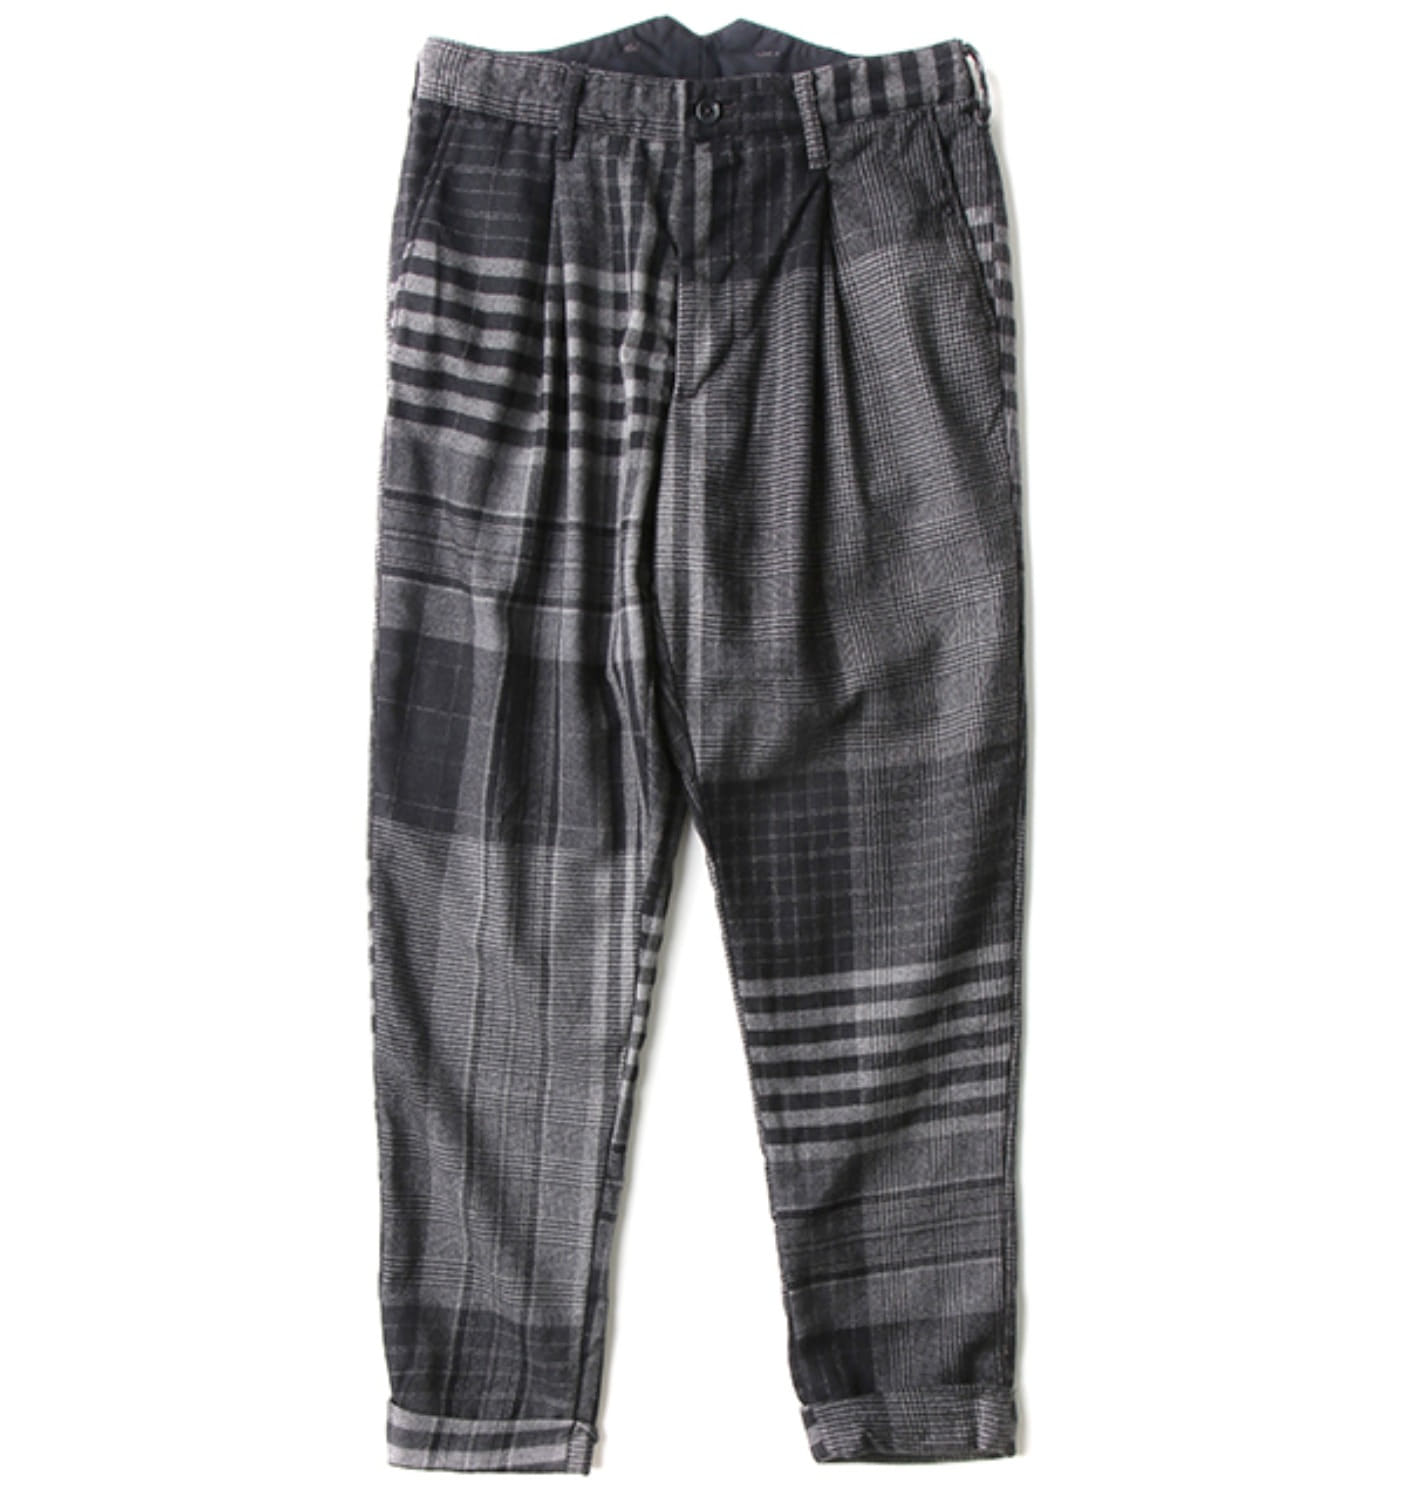 WILLY POST PANT GREY/BLACK WORSTED(WF7F0151)